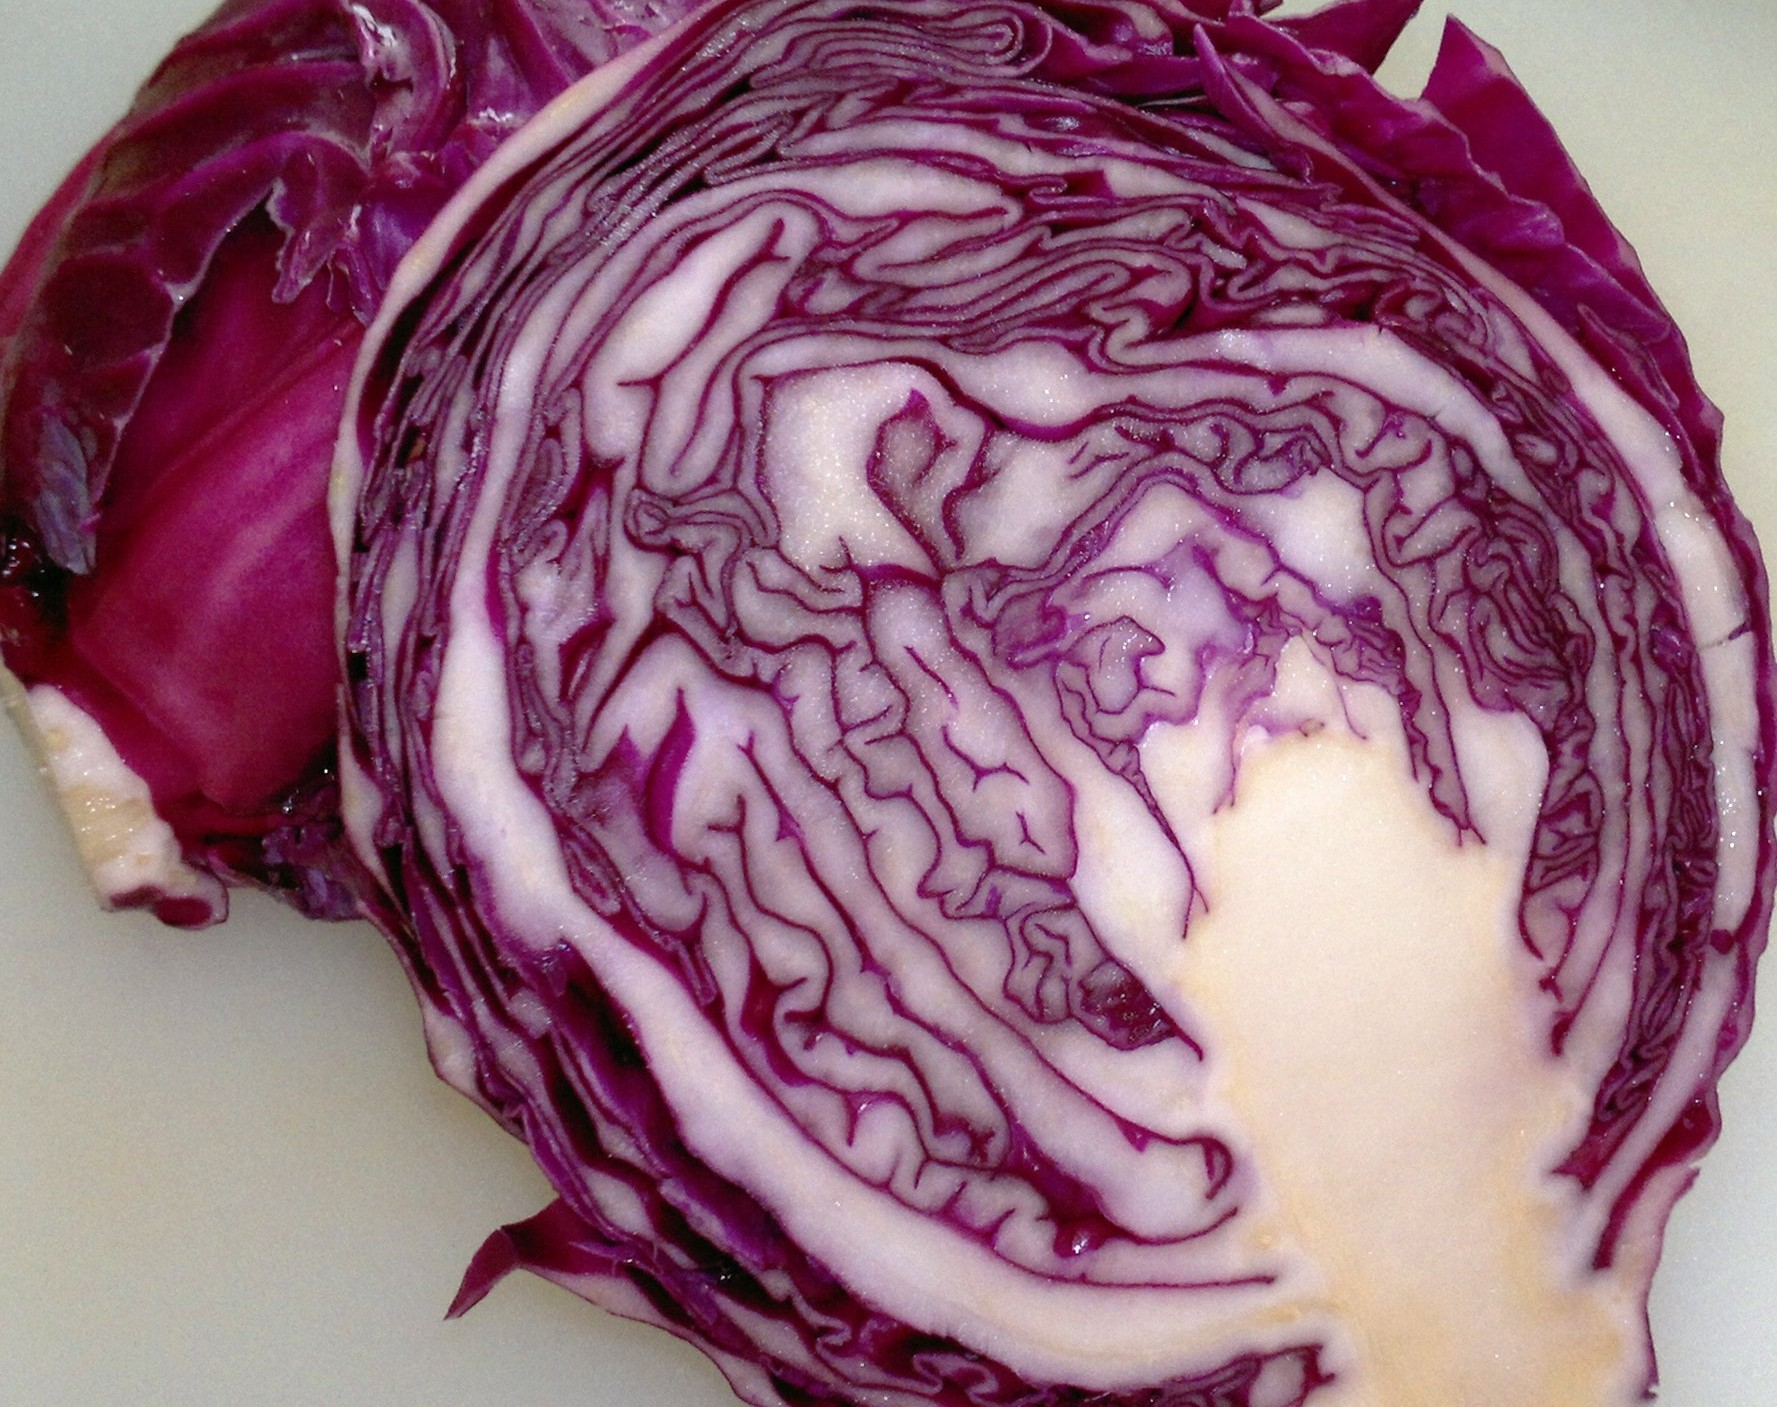 Traditional red cabbage variety Red Drumhead